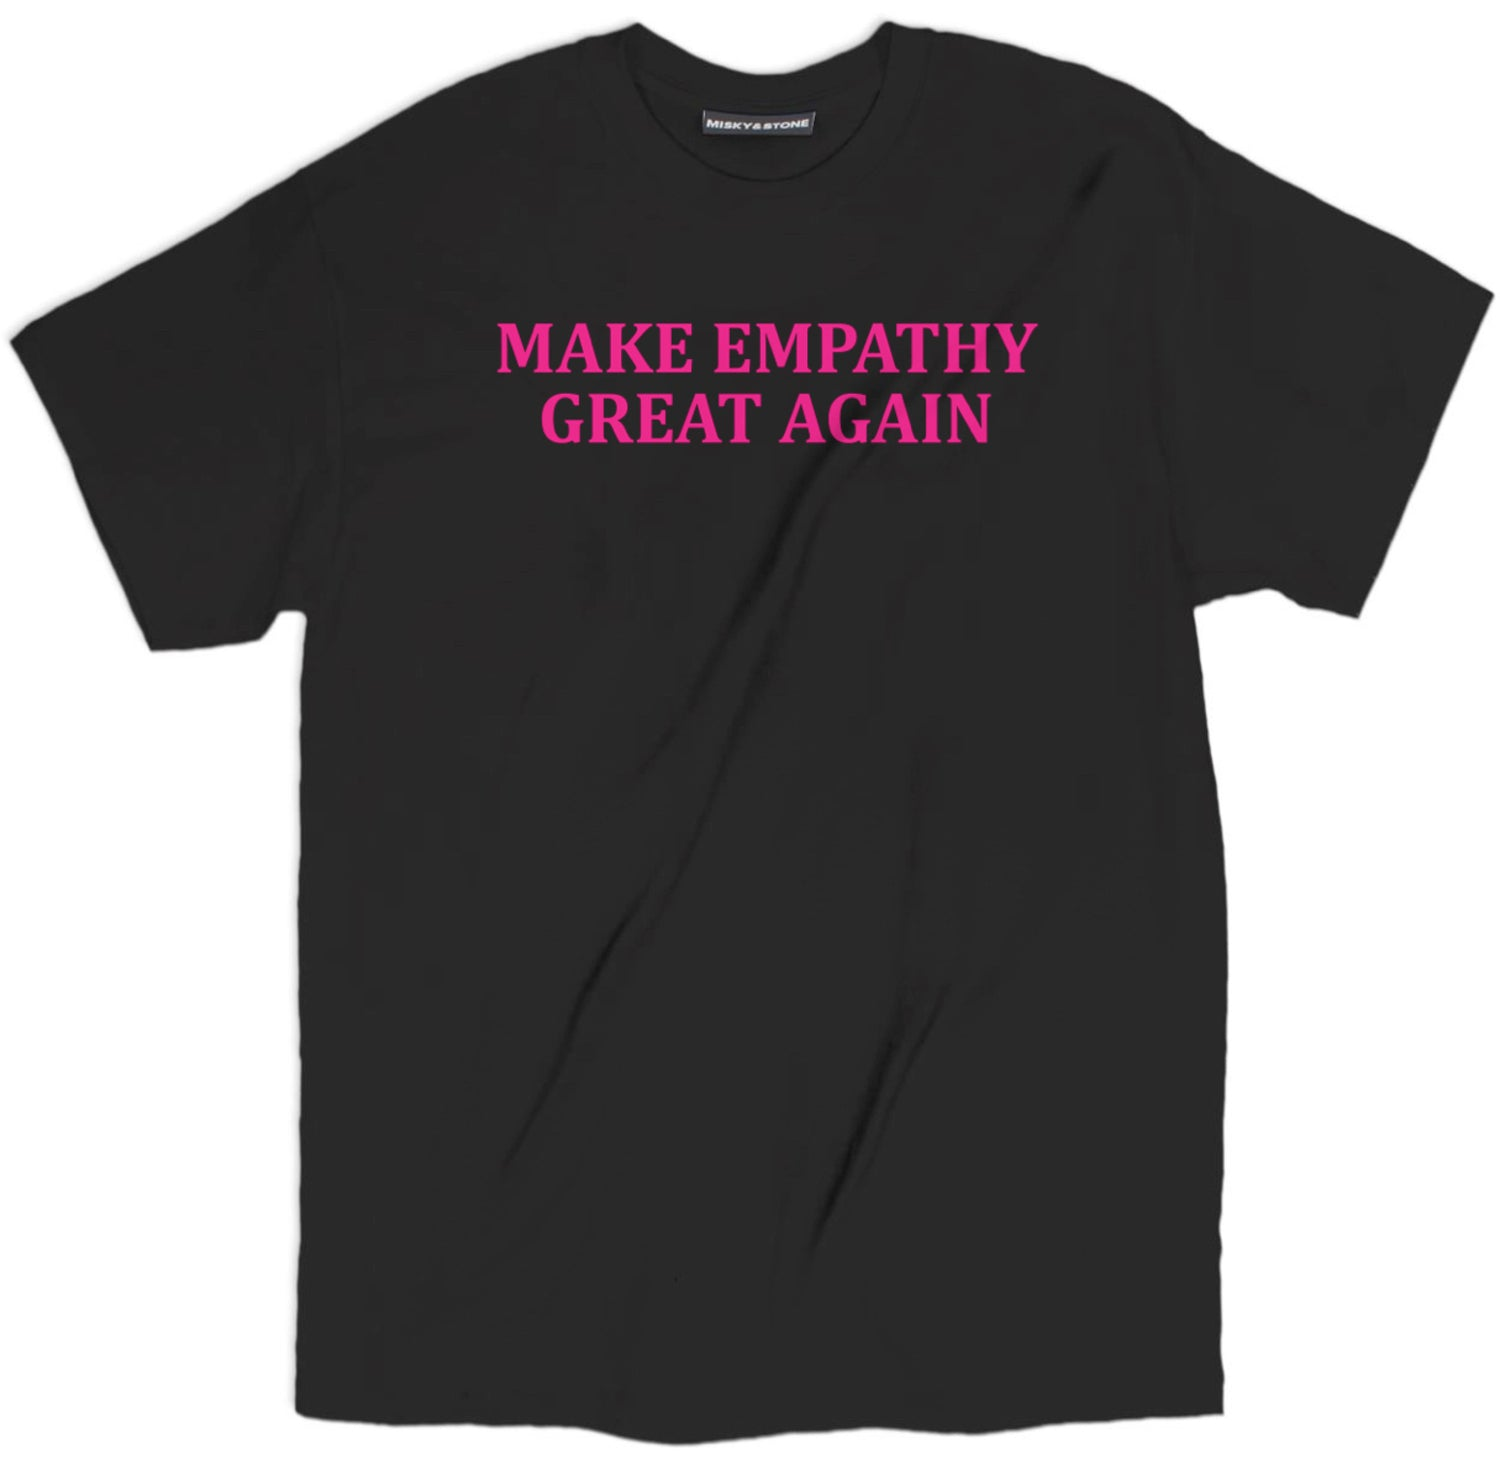 make empathy great again shirt, parody shirts, parody t shirts, pun shirts, pun t shirts, shirts with puns, spoofs shirt, spoofs t shirt, designer parody shirts, logo parody t shirts, art parody  shirts, movie parody t shirts, parody clothing brands,